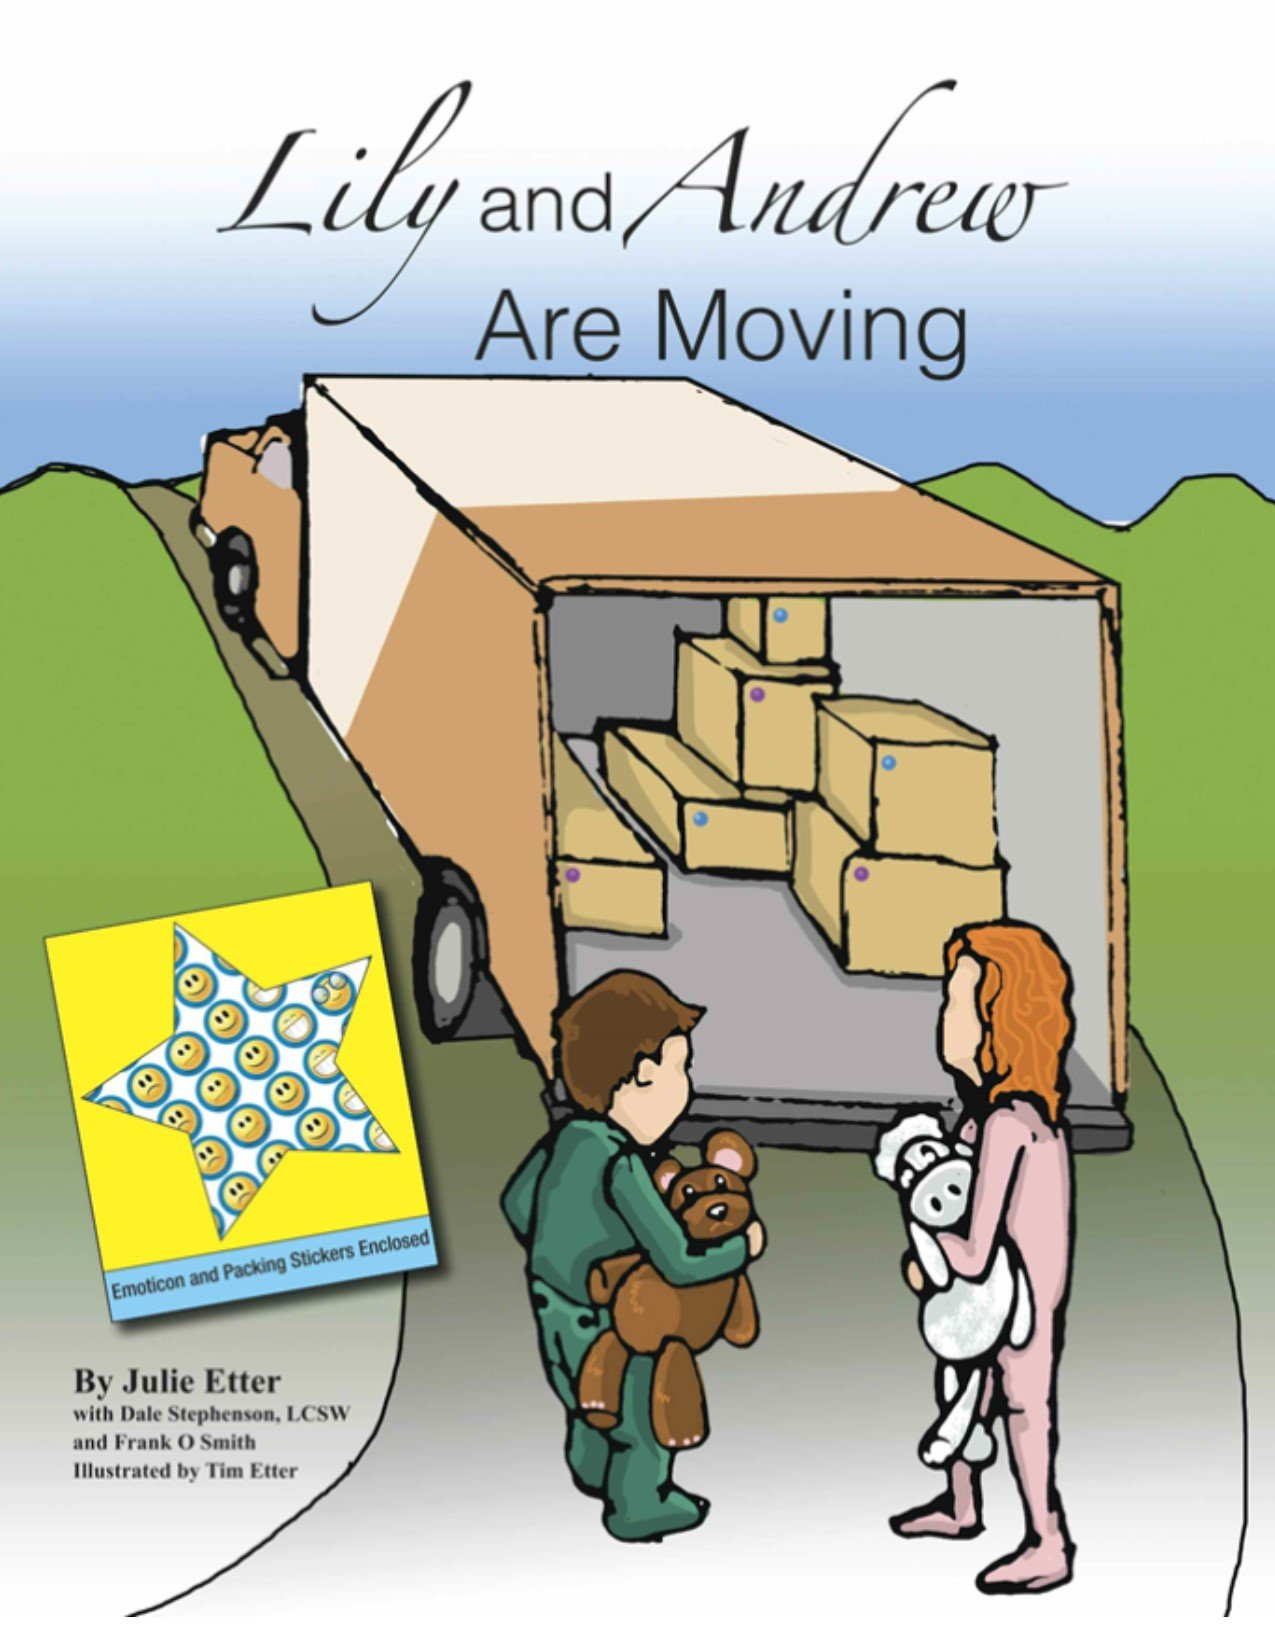 Lily and Andrew Are Moving book cover